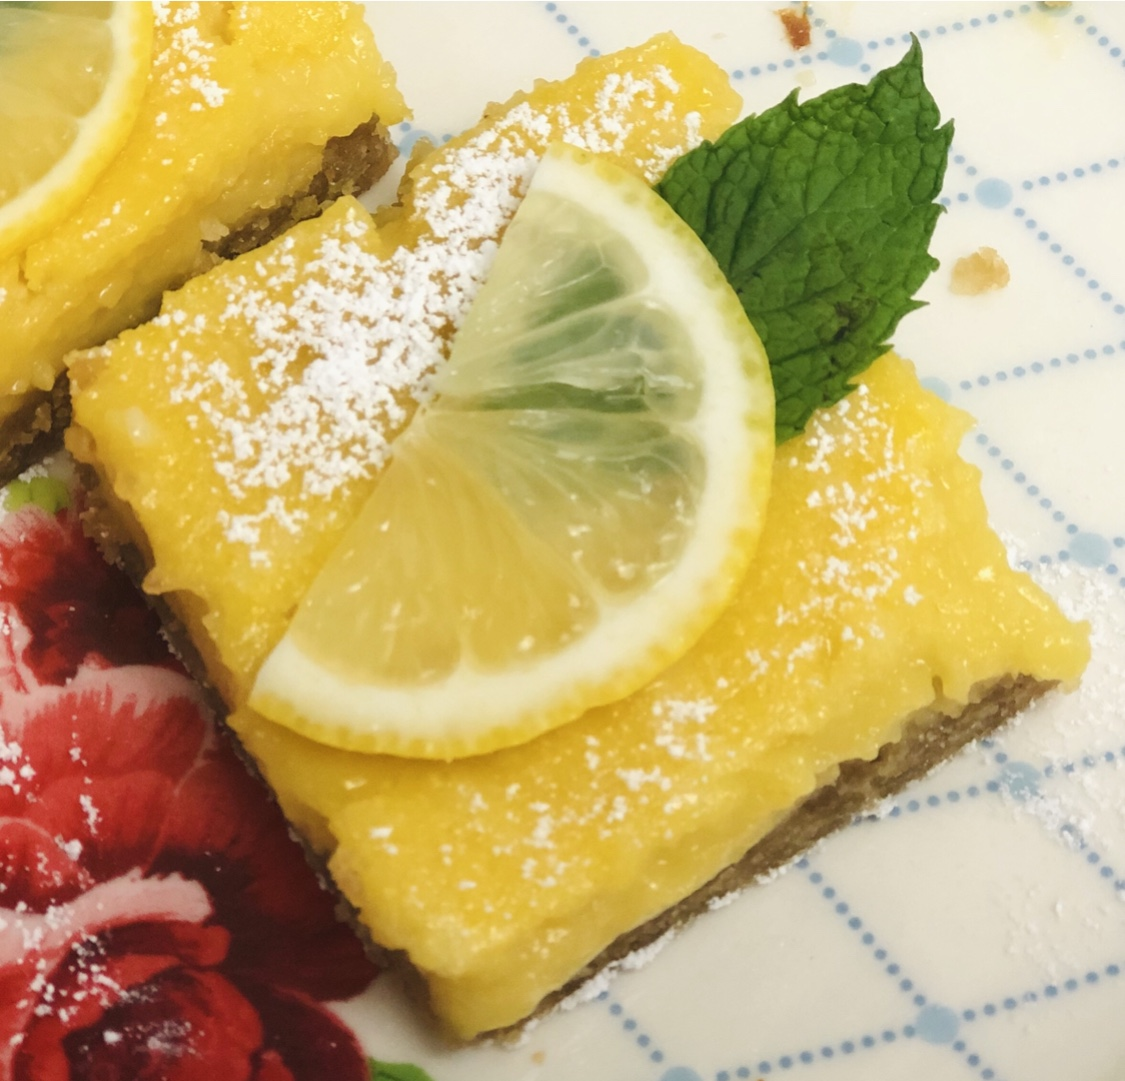 paleo-lemon-bars-recipe-heather-lucilles-kitchen-food-blog